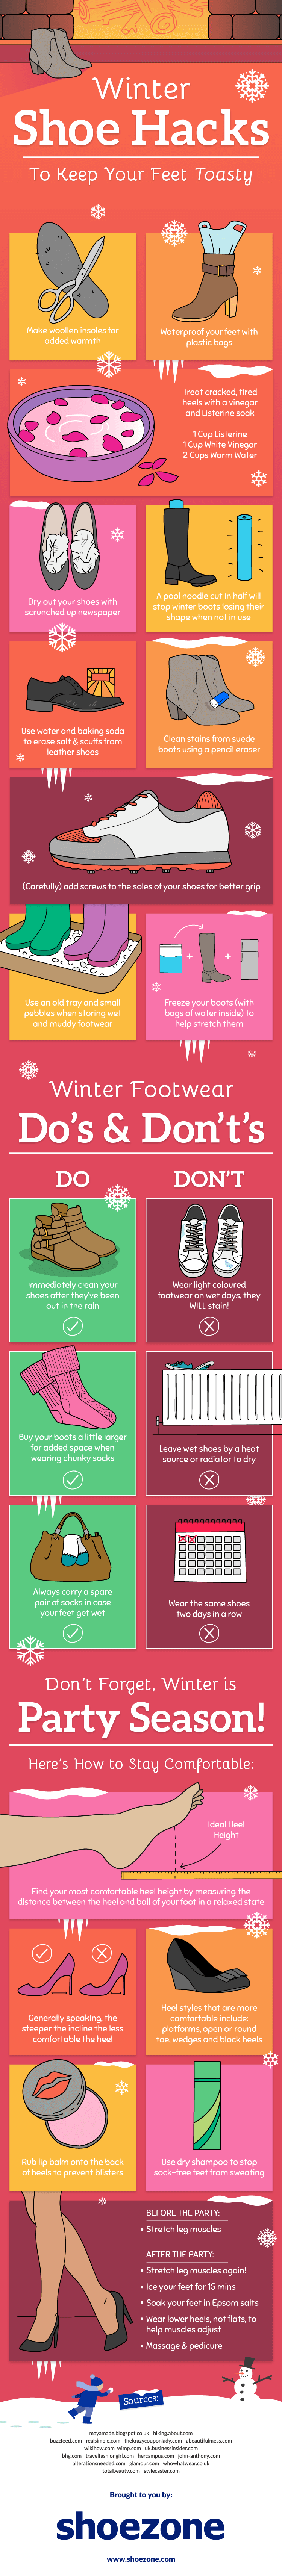 Winter Hacks to Protect Your Shoes and Feet